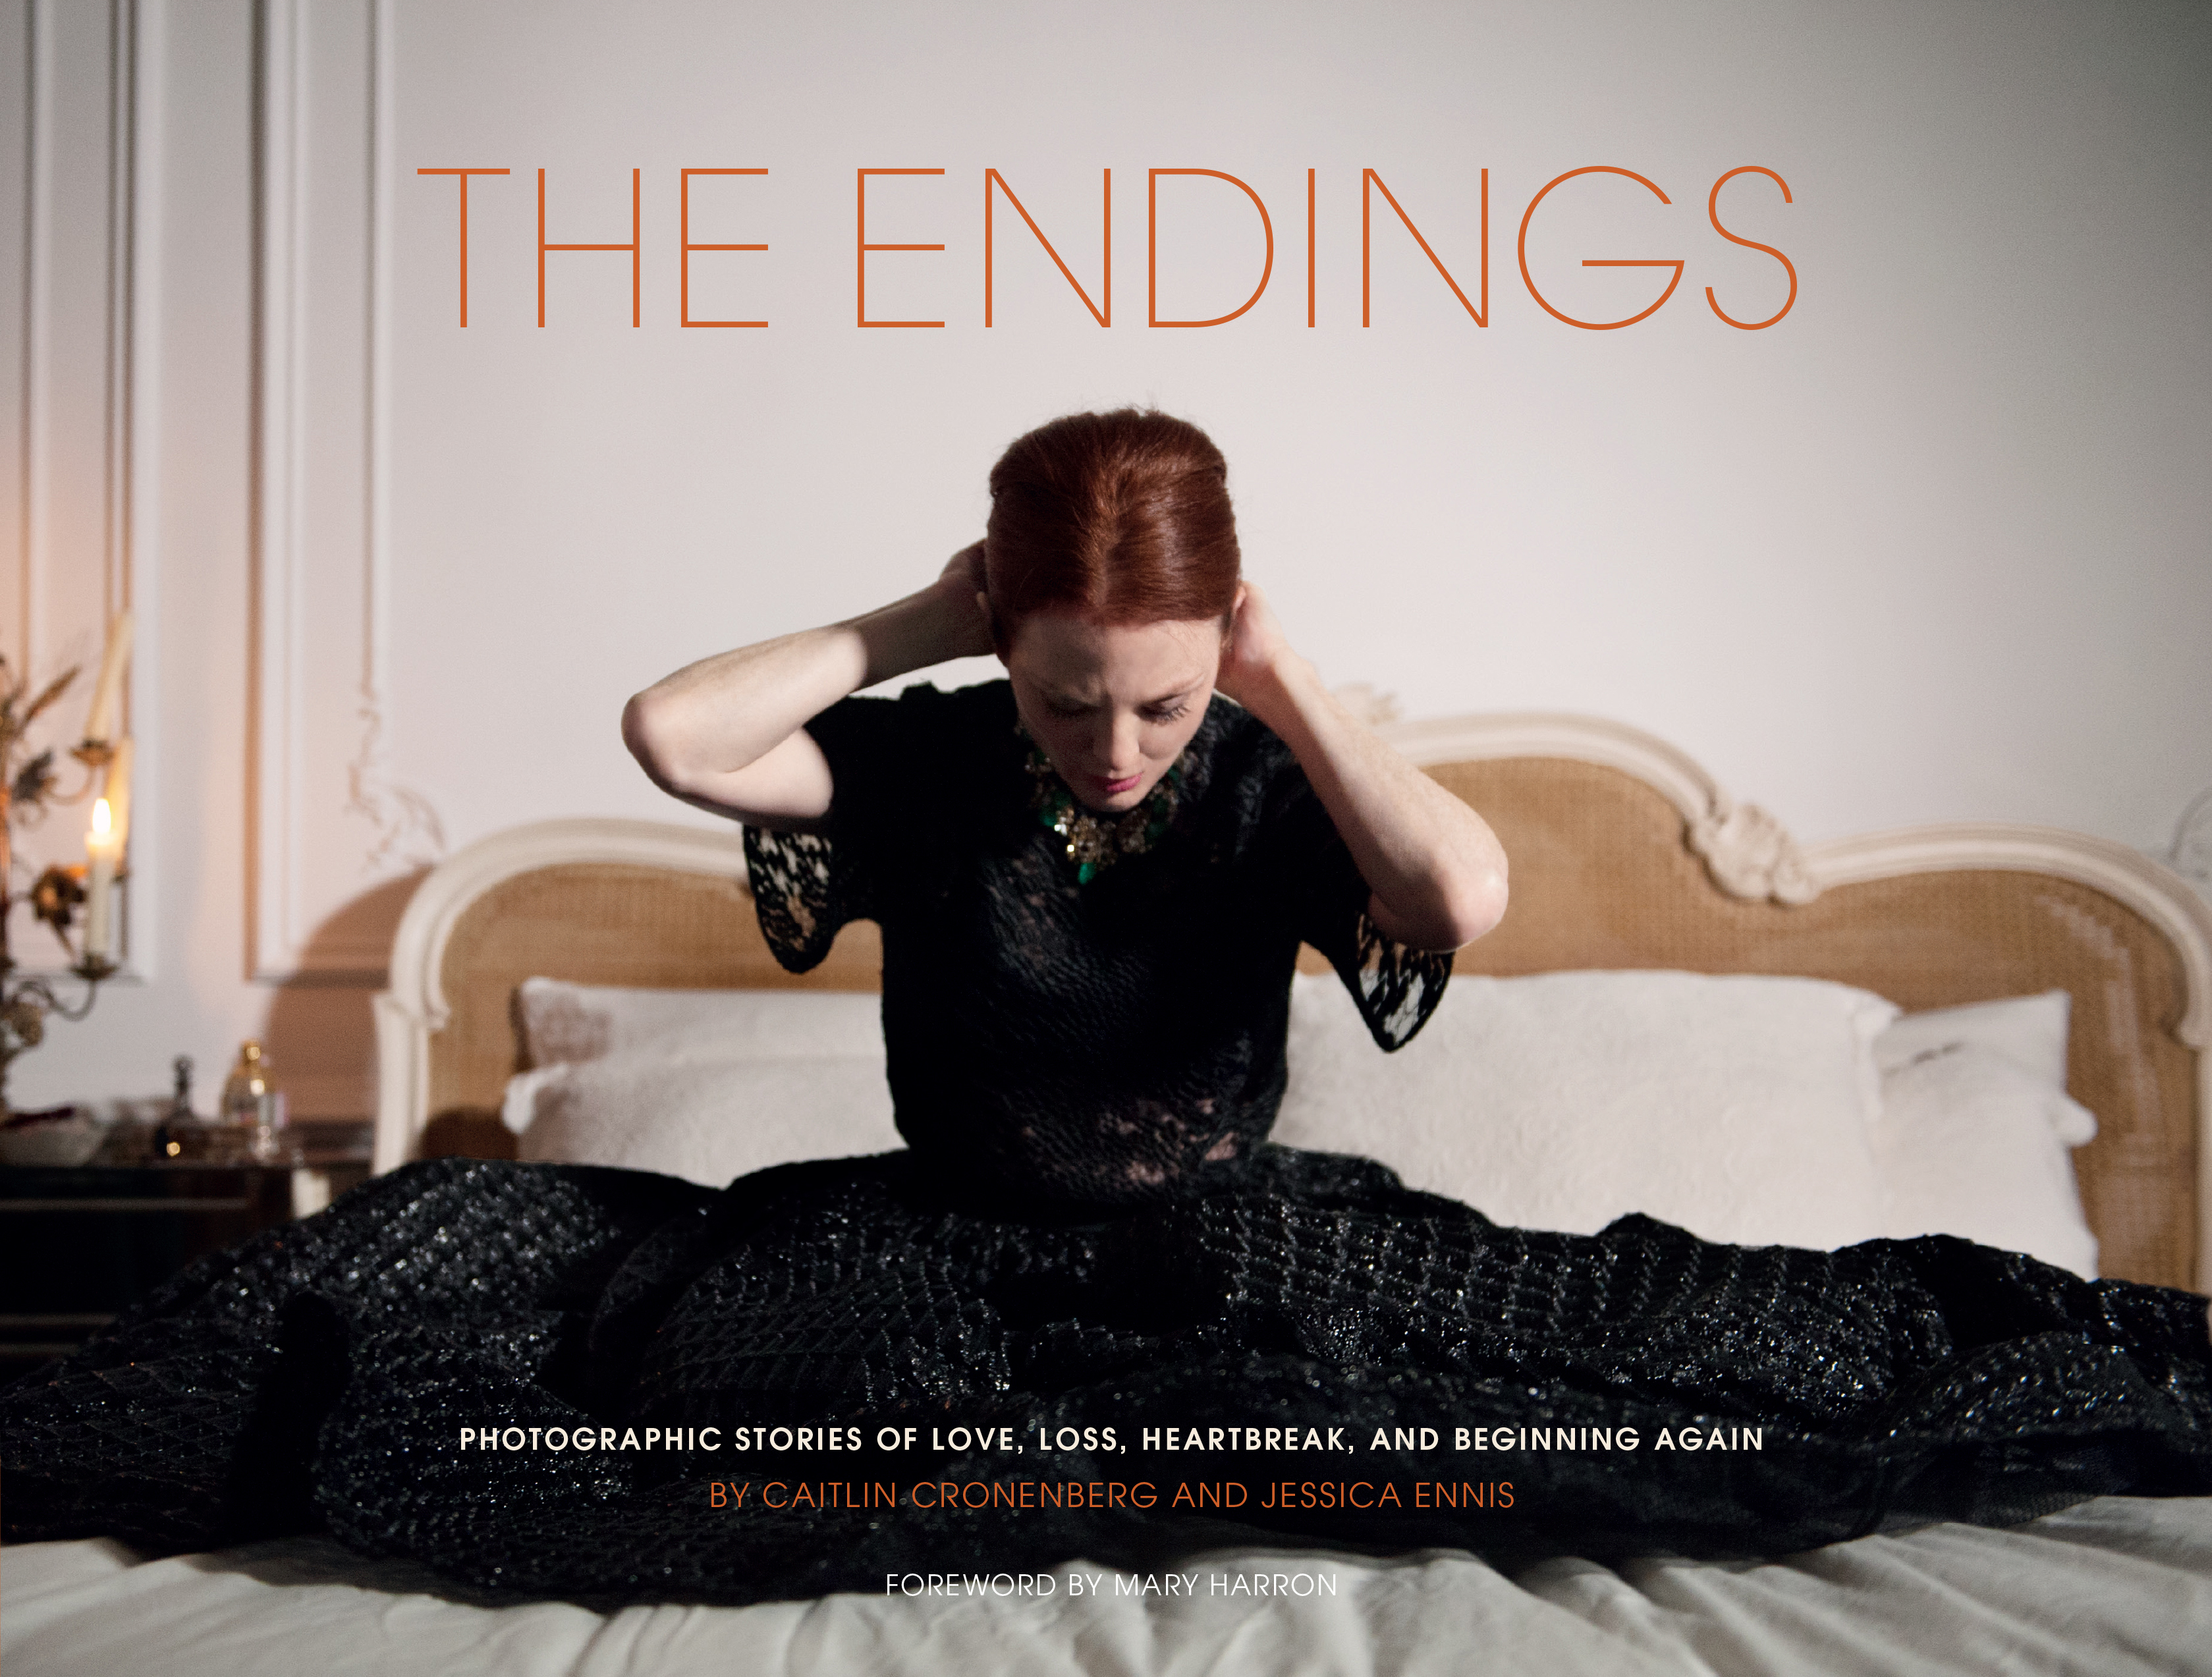 Julianne Moore in the cover page for 'Photographic Stories of Love, Loss, Heartbreak, And Beginning Again'